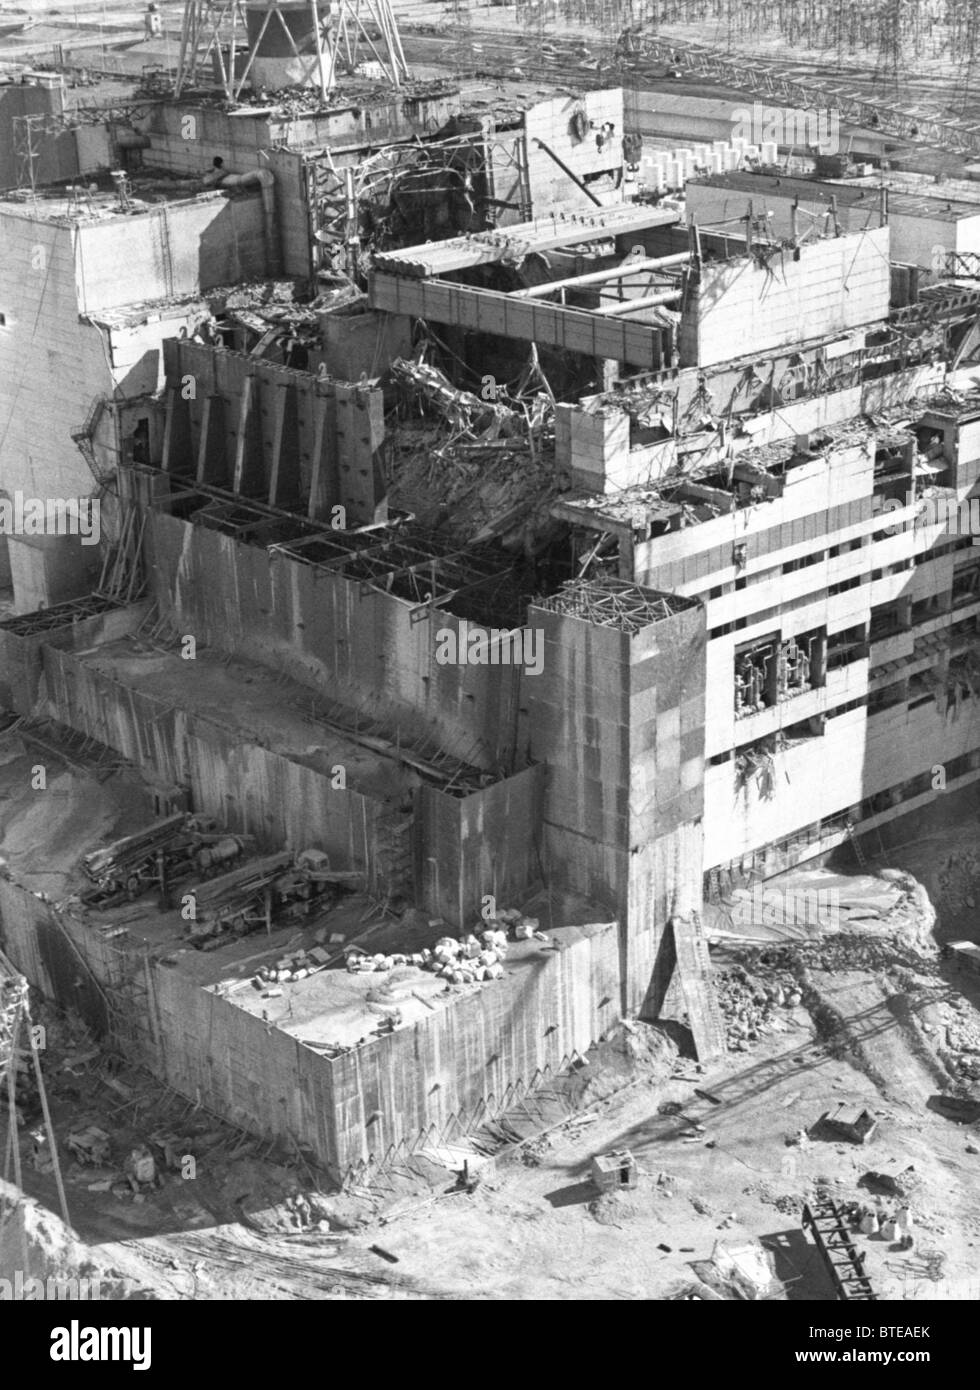 Plans for the final shutdown of the Chernobyl nuclear power plant. - Stock Image